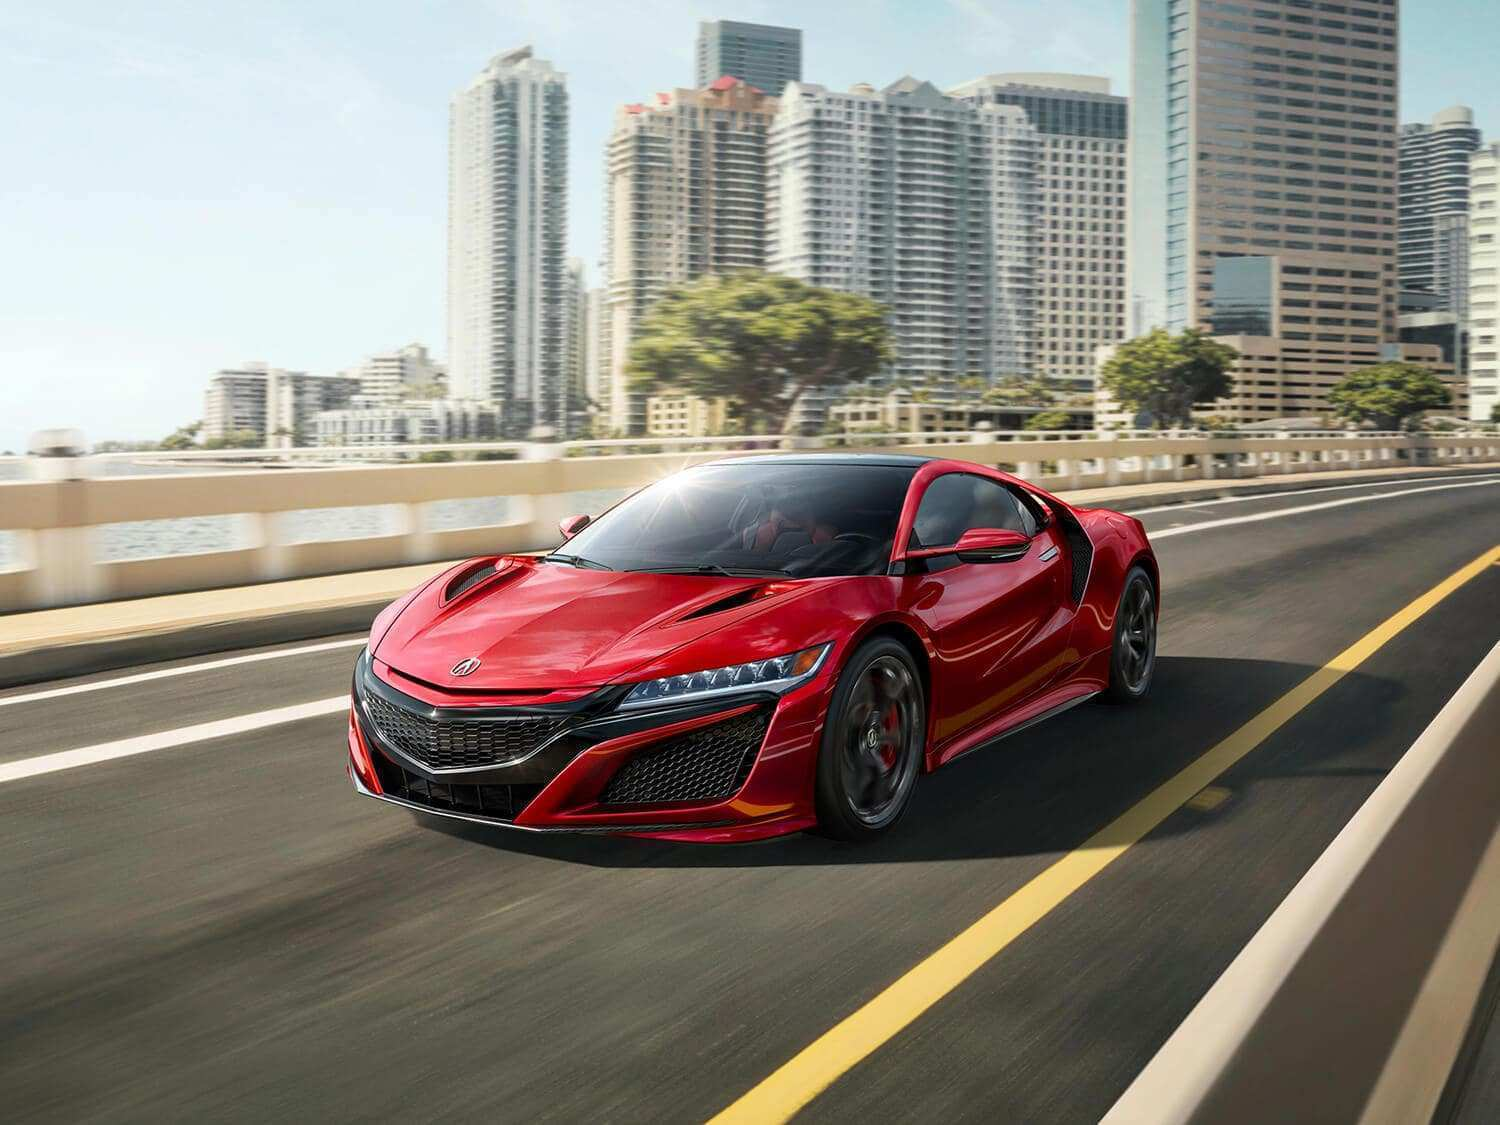 34 New 2019 Acura NSX Release Date And Concept